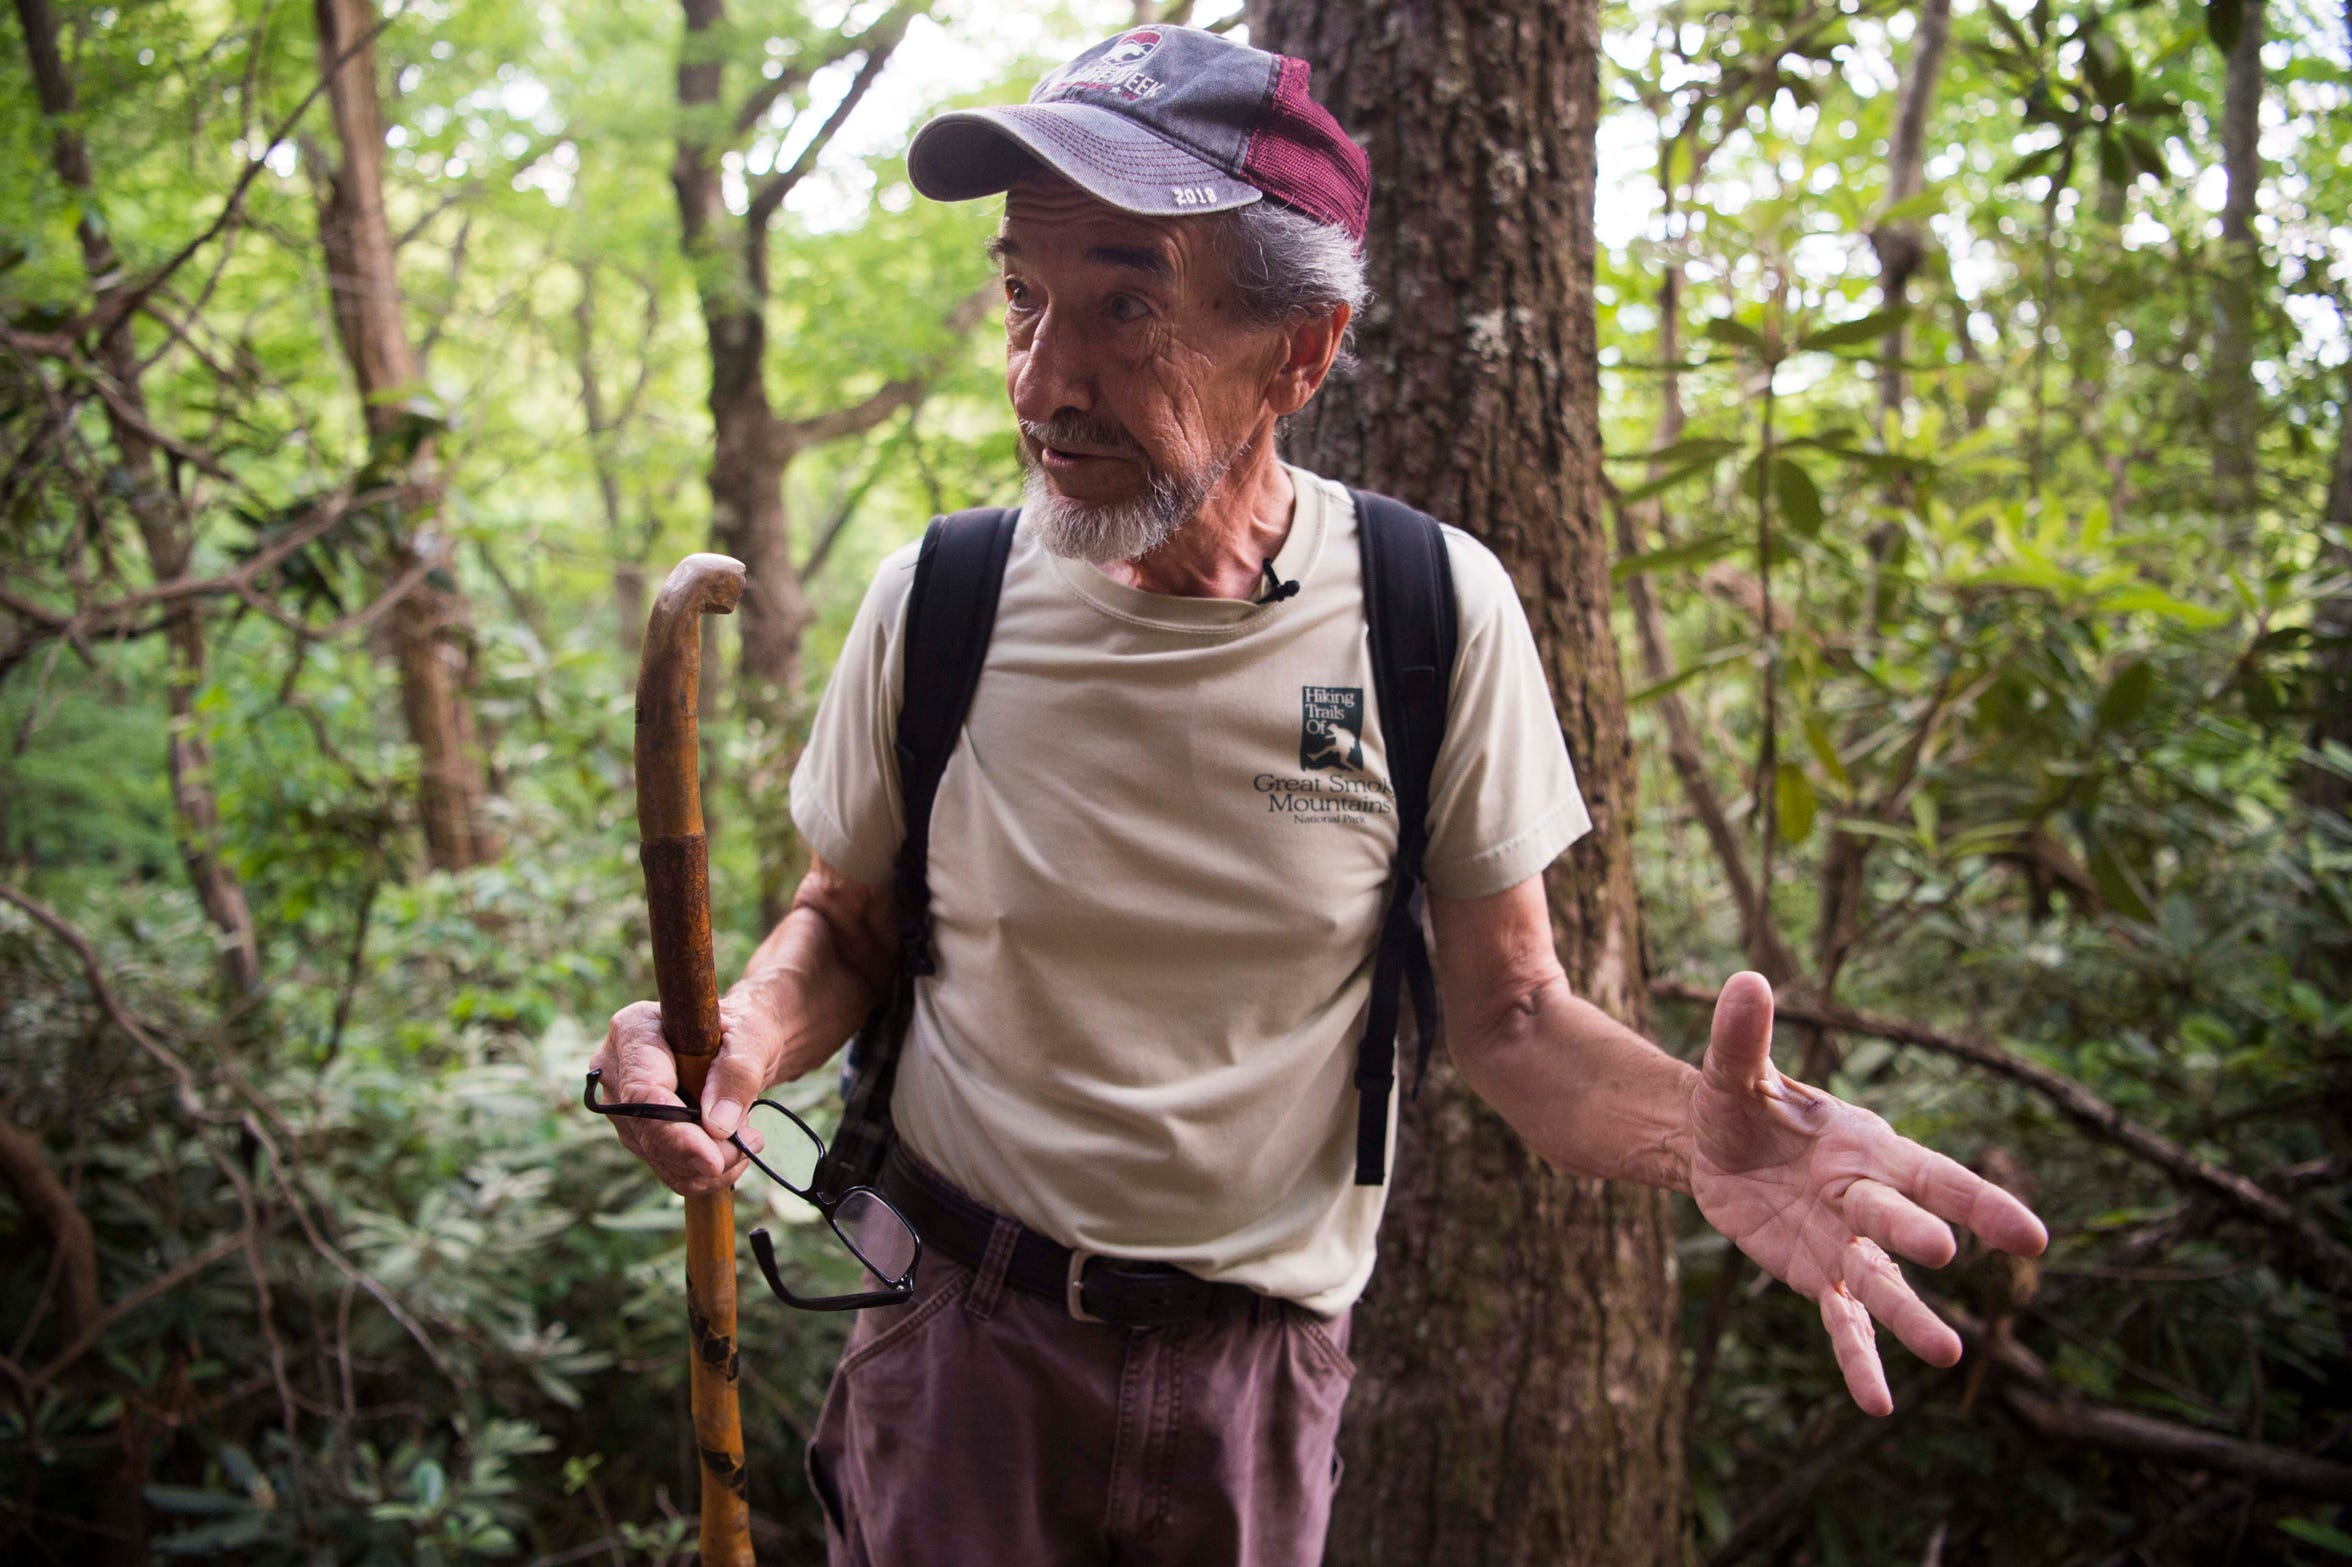 Dwight McCarter, a tracker and retired Great Smoky Mountains National Park ranger, hikes toward Spence Field where 6-year-old Dennis Martin disappeared and was never found June 14, 1969. McCarter was a young ranger during the search for the Knoxville boy, which remains the most massive in the park's history.